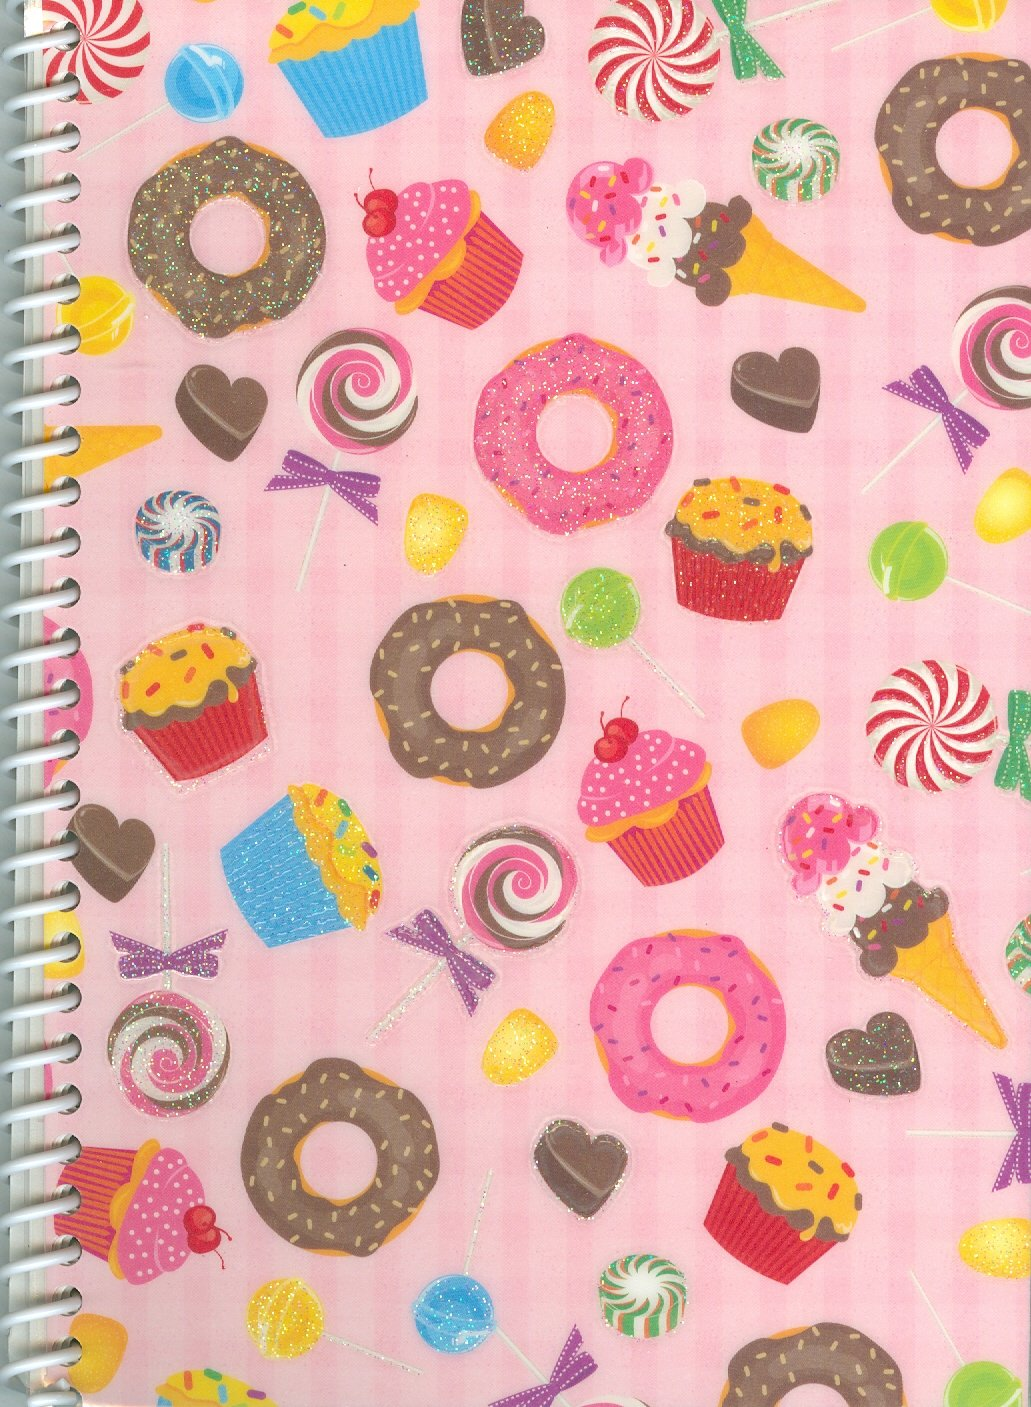 Cupcakes and Candy Sticker Collecting Album 5 x 7, Re-usable!